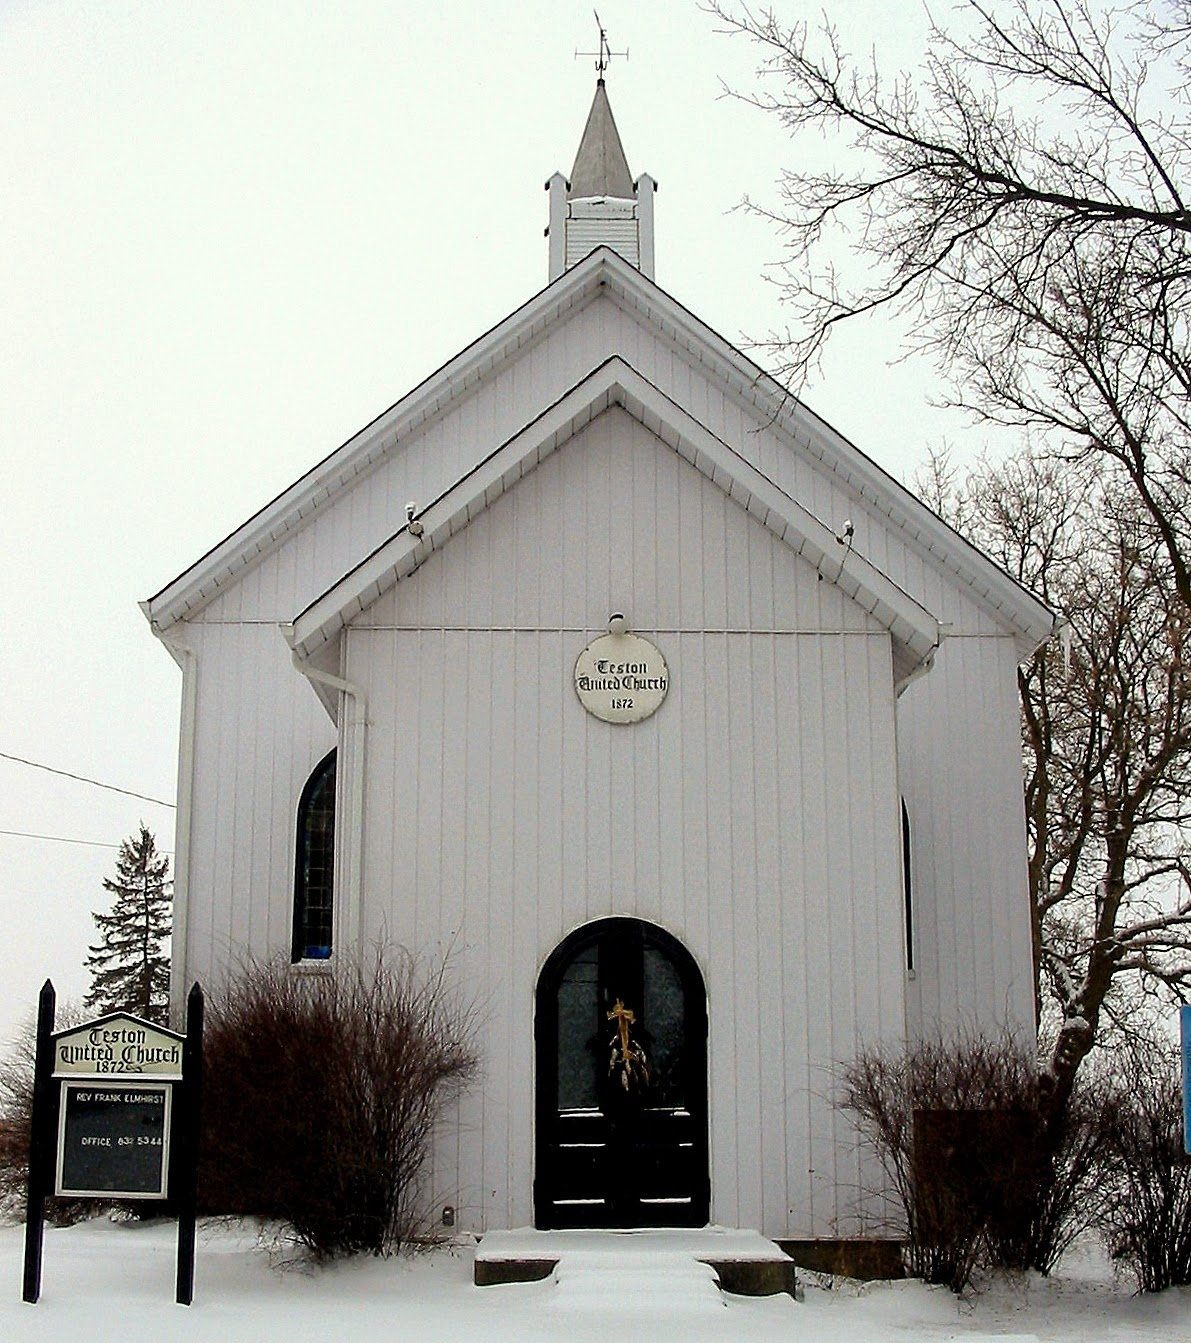 Teston United Church